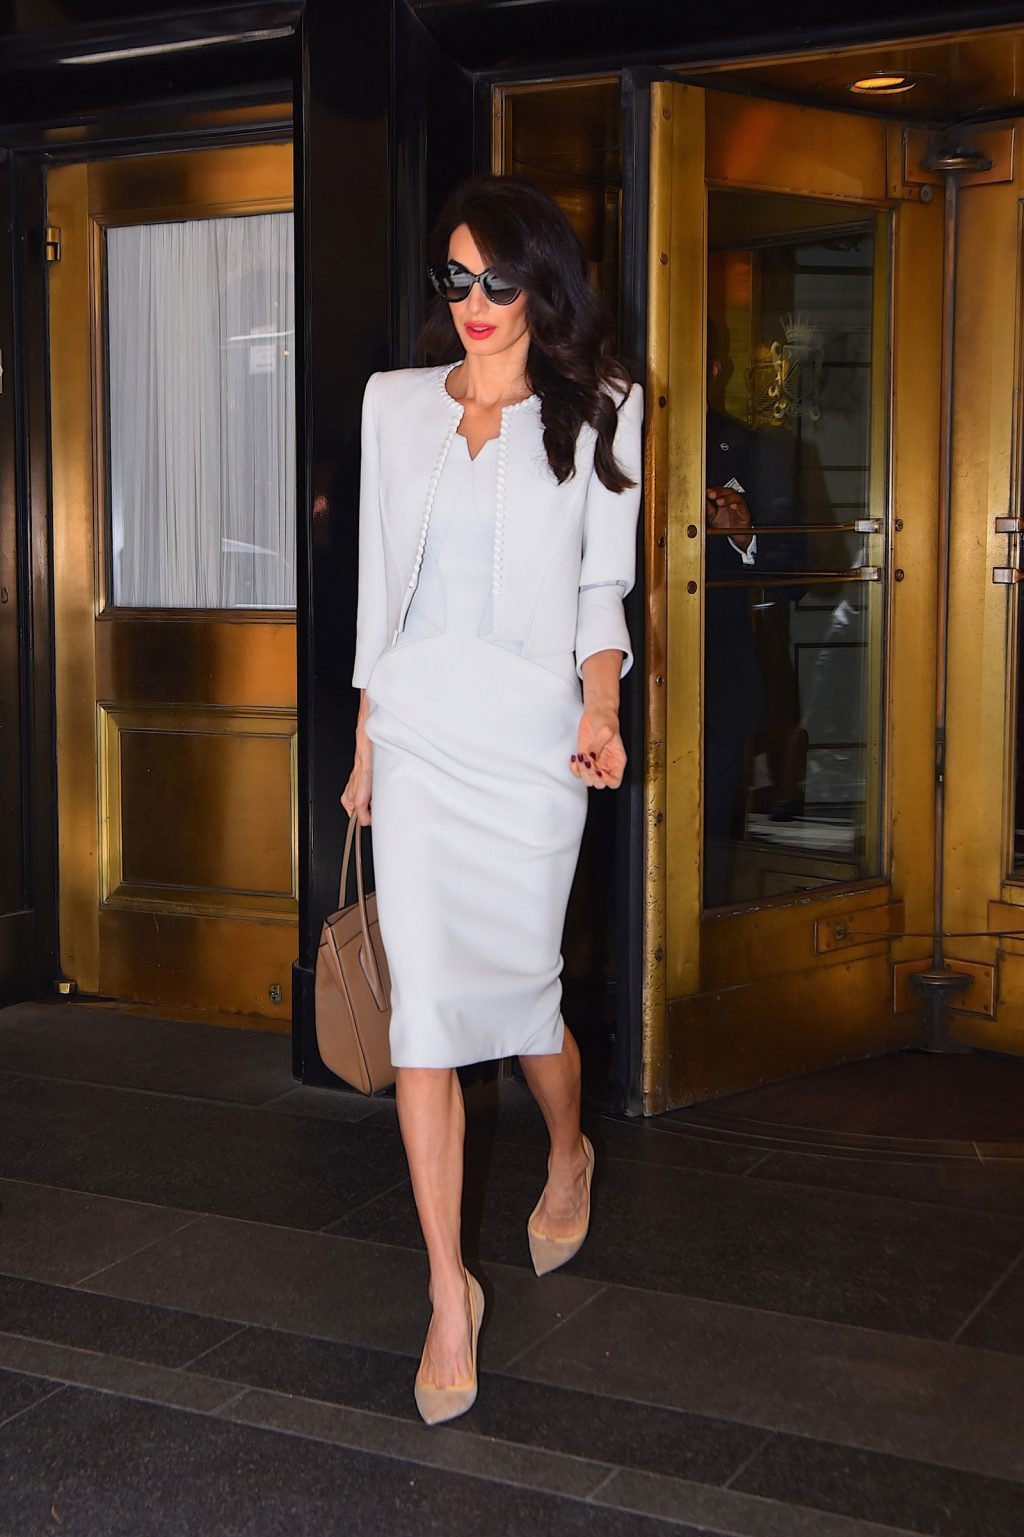 Case Closed: Human-Rights Lawyer Amal Clooney Is Back and Better Than Ever